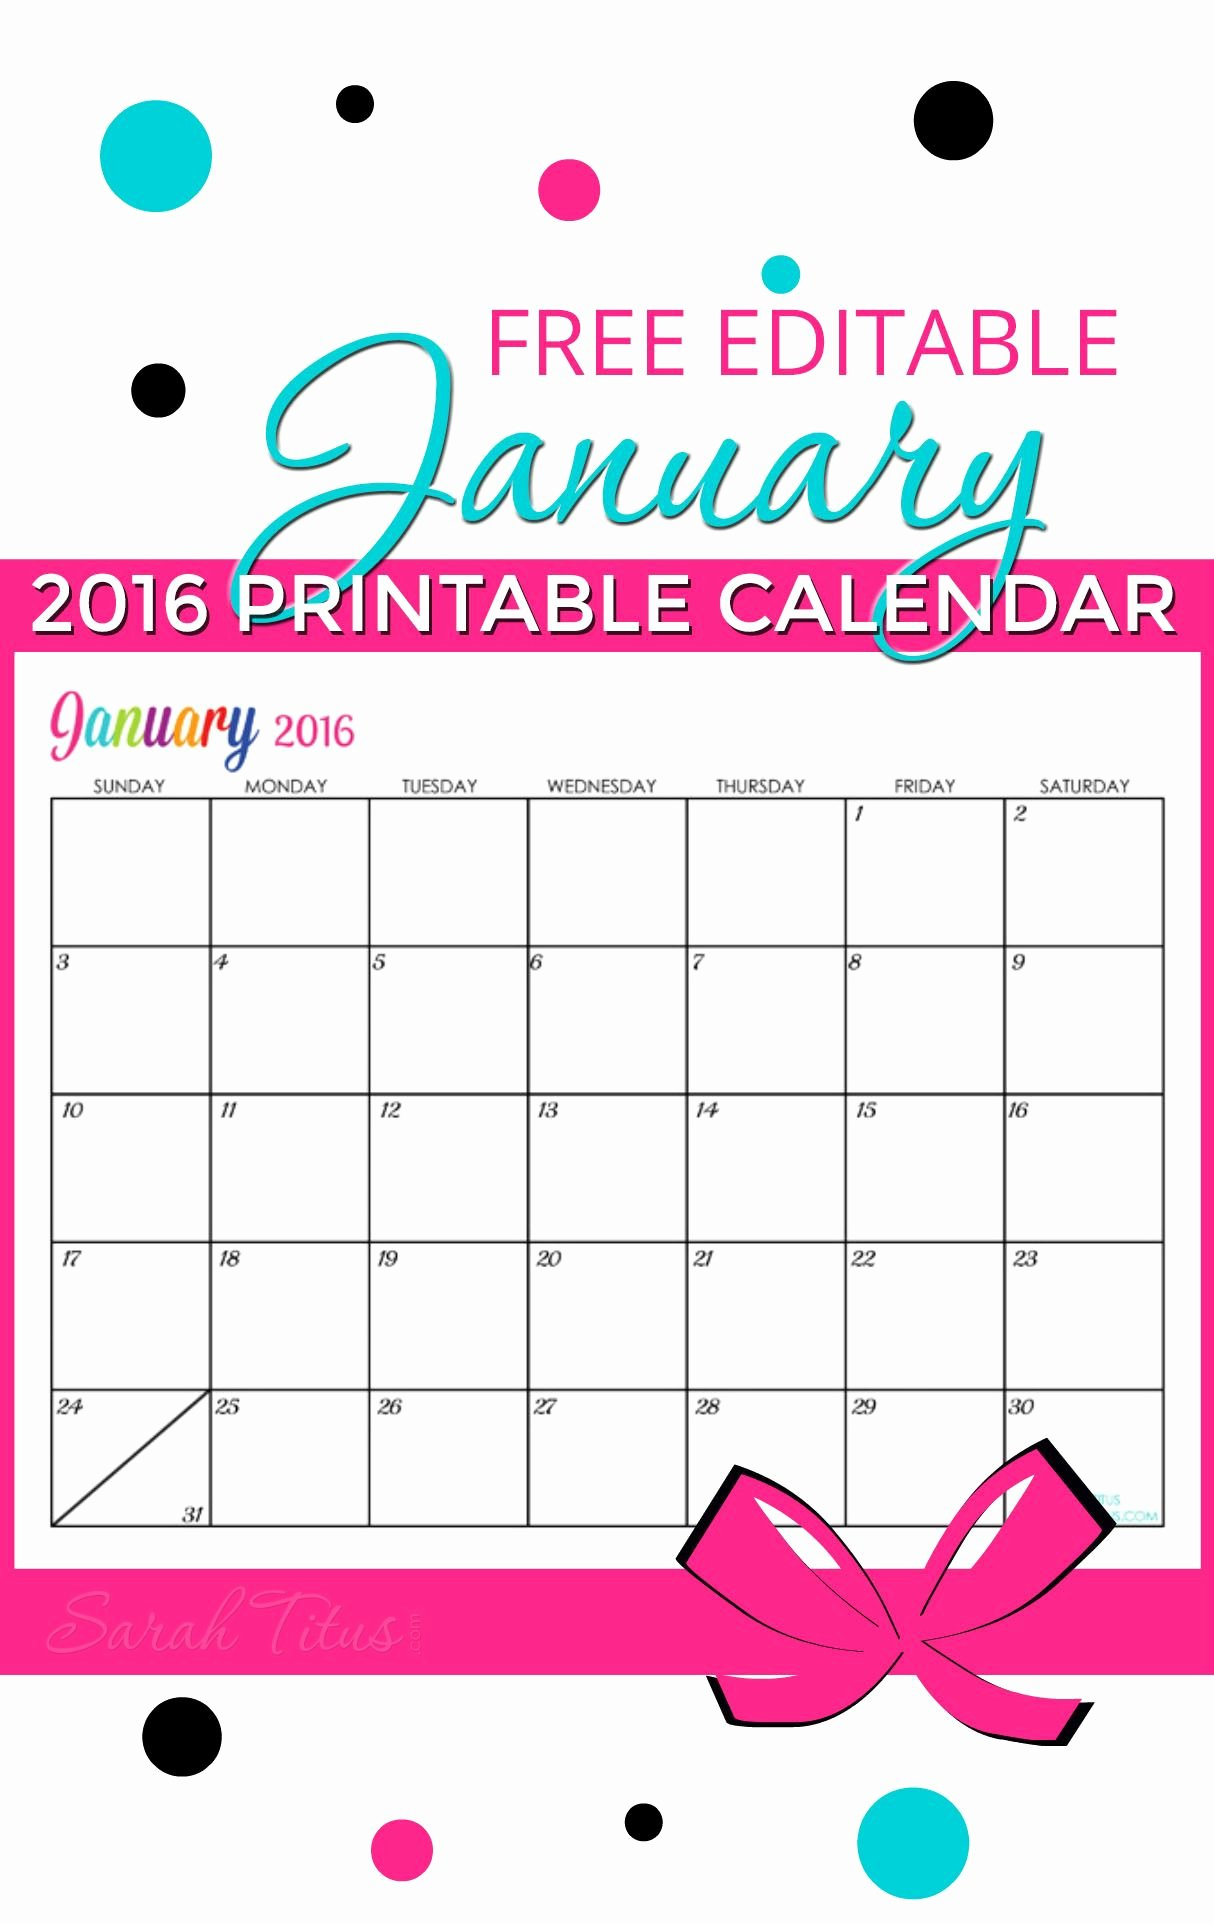 Free Printable Editable Calendar Lovely Great for Menu Planning Homeschooling Blogging and